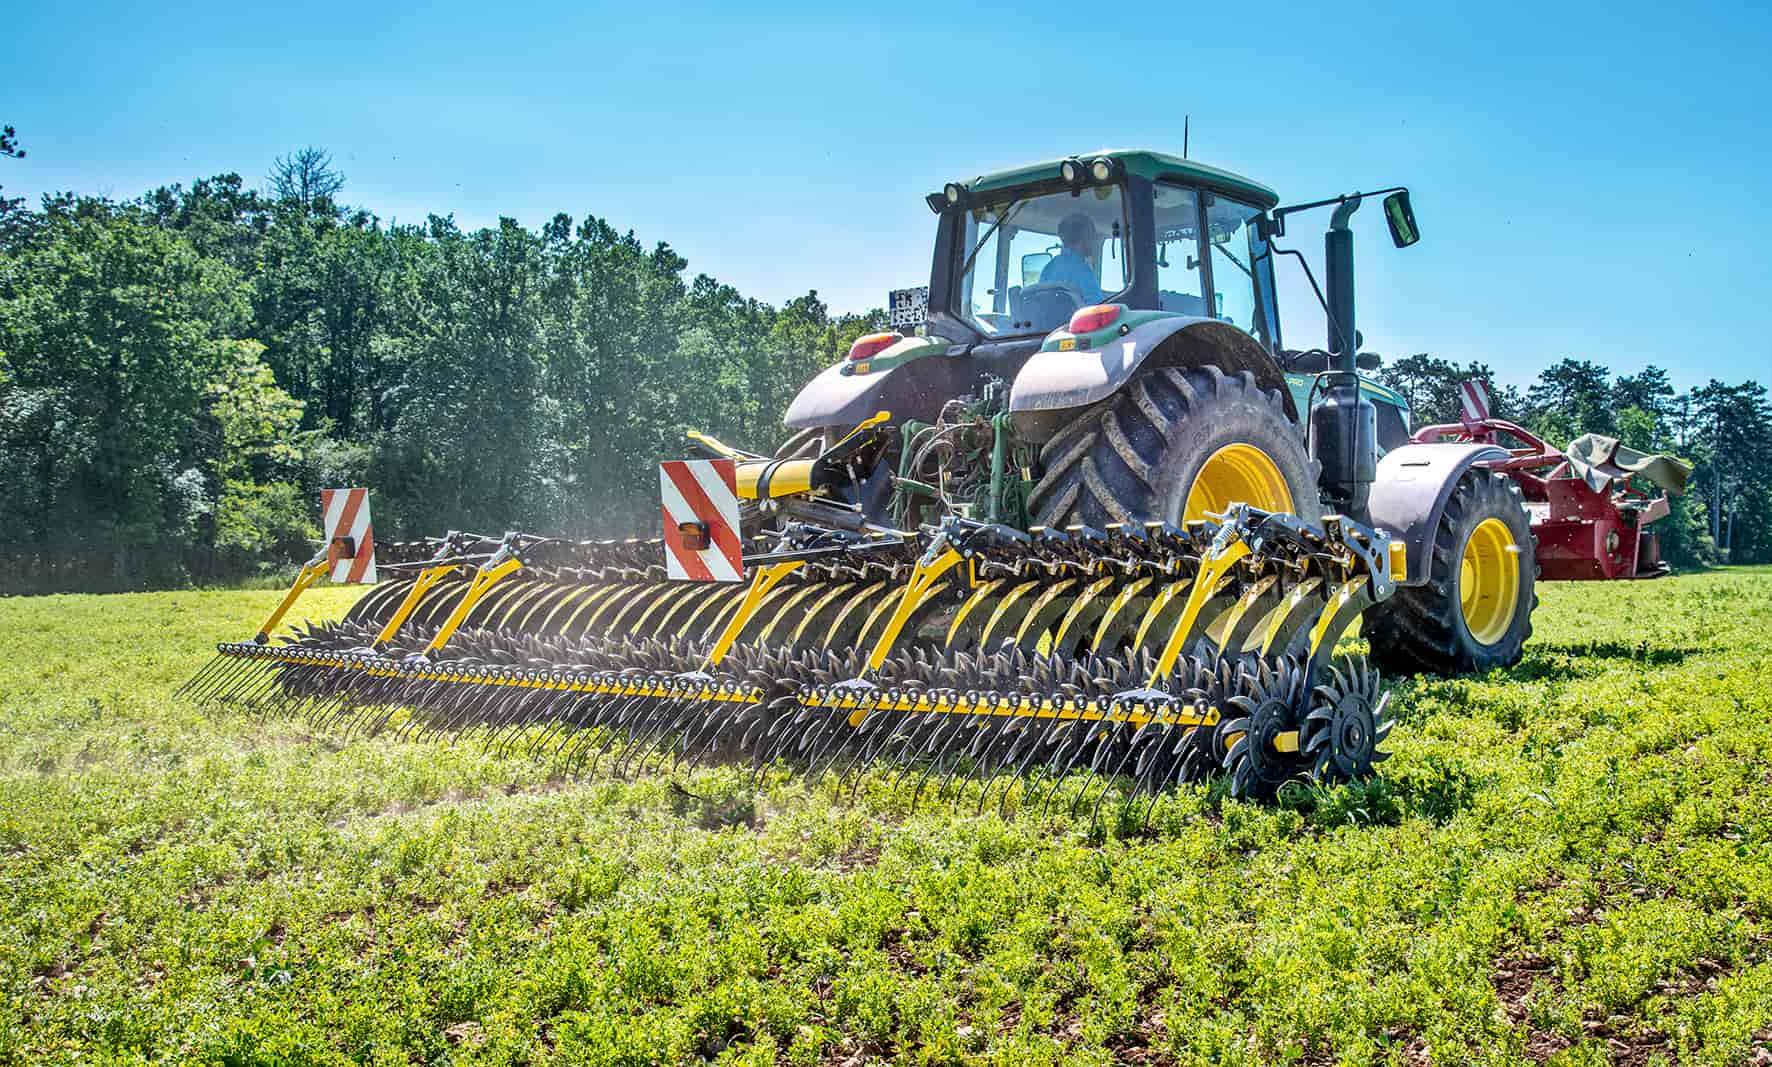 The Helios row hoe is a new crop cultivation tool for weeding, crusting and hydrating the seeding.